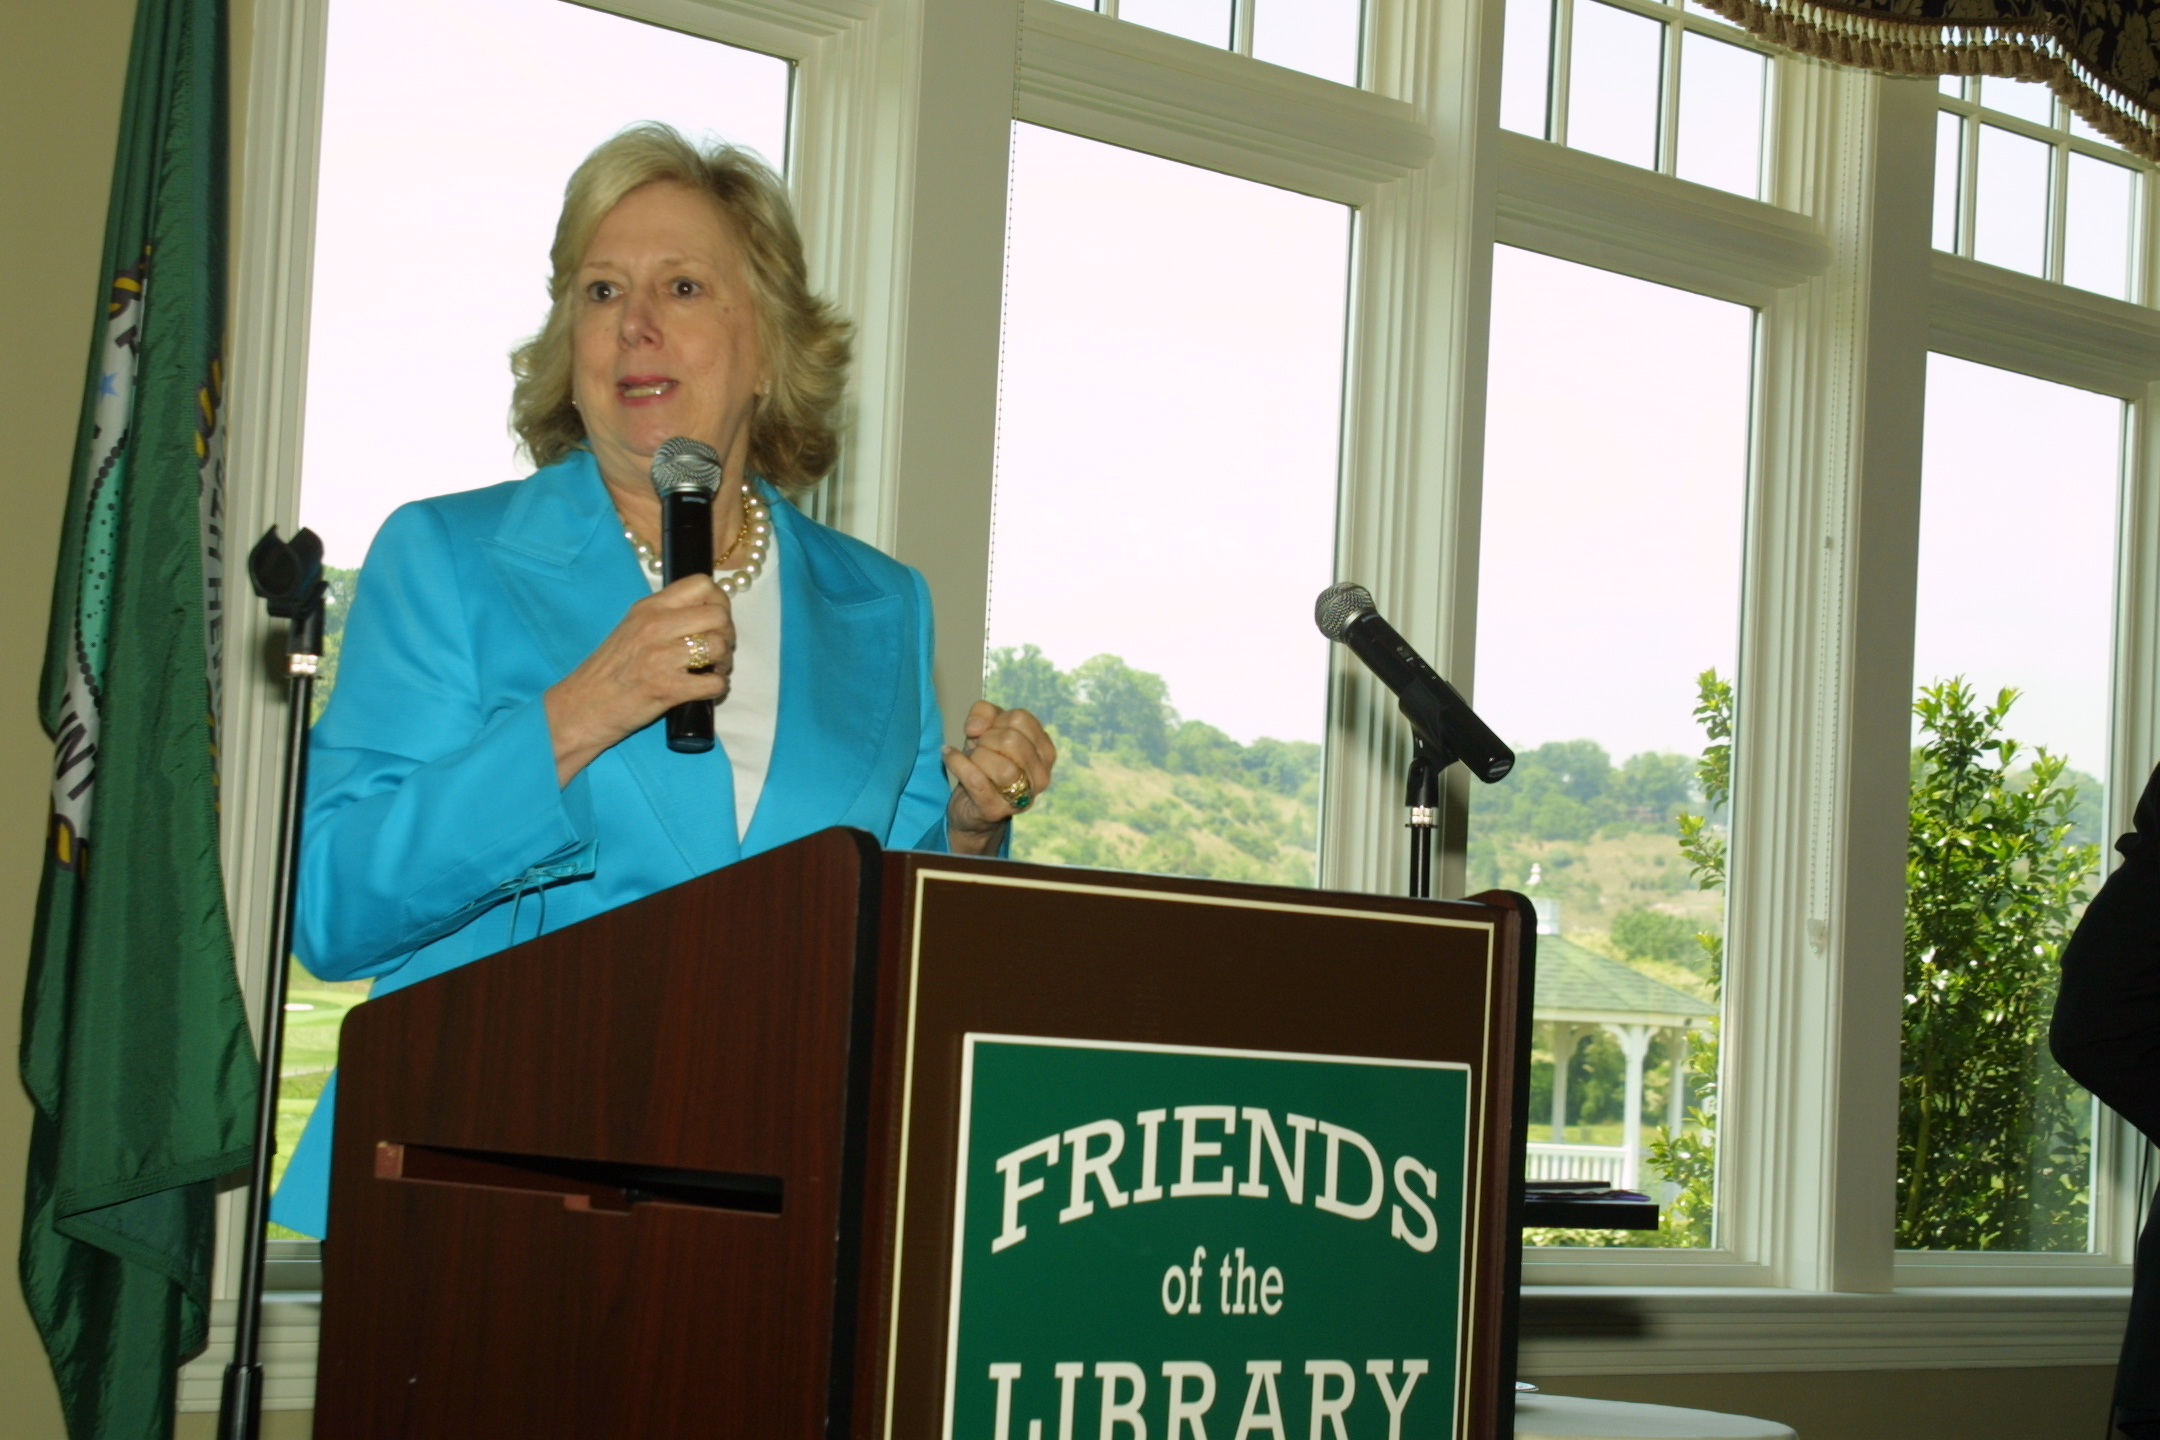 Linda Fairstein regaled the crowd with the real-lifes stories behind her crime fiction.